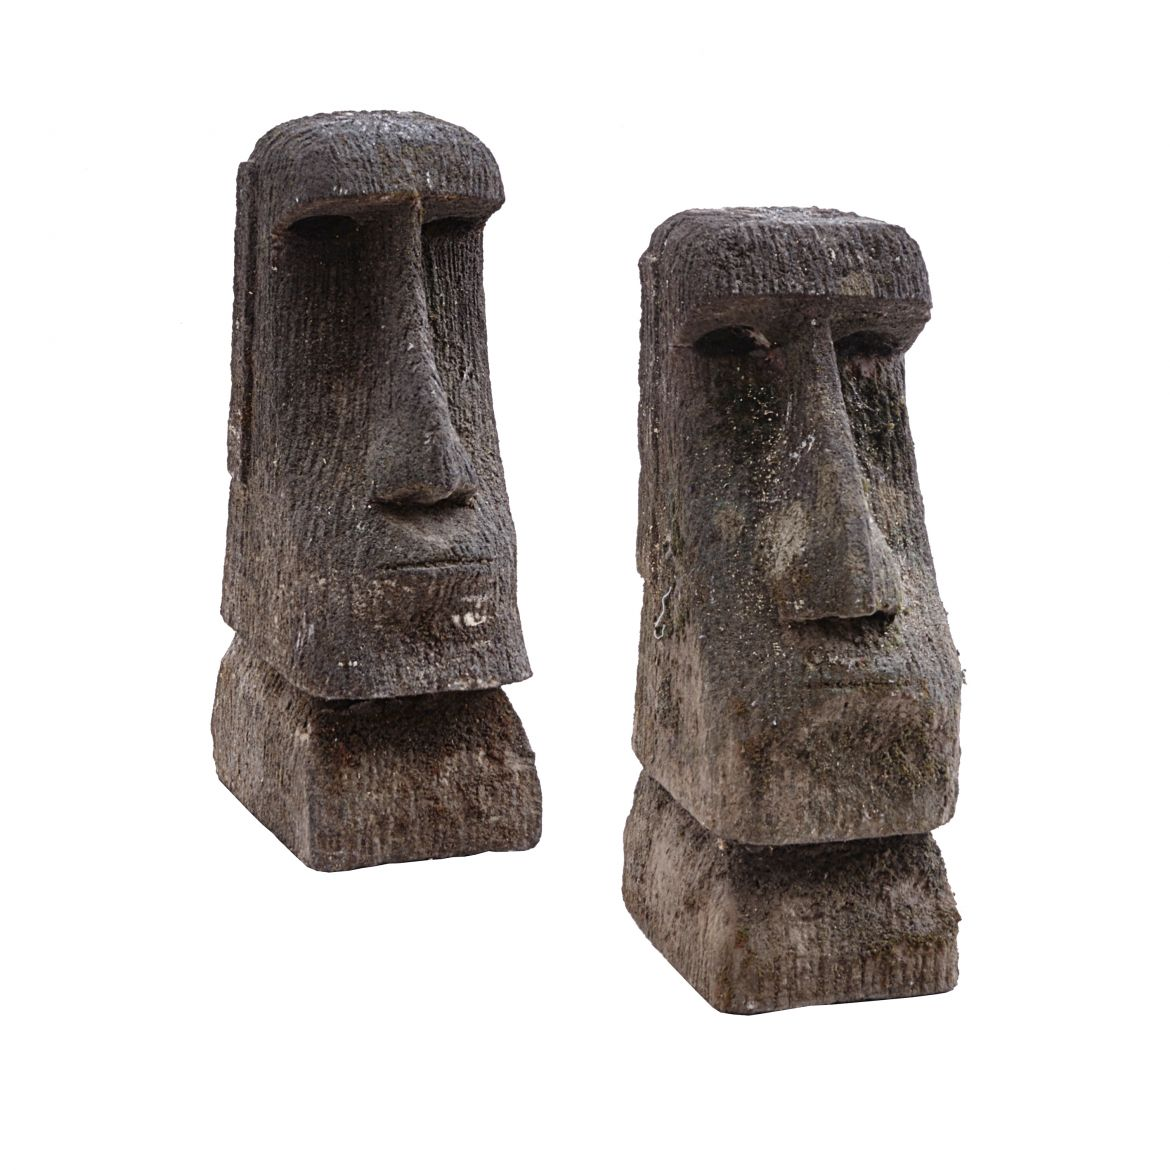 Matched Pair Easter Island Heads